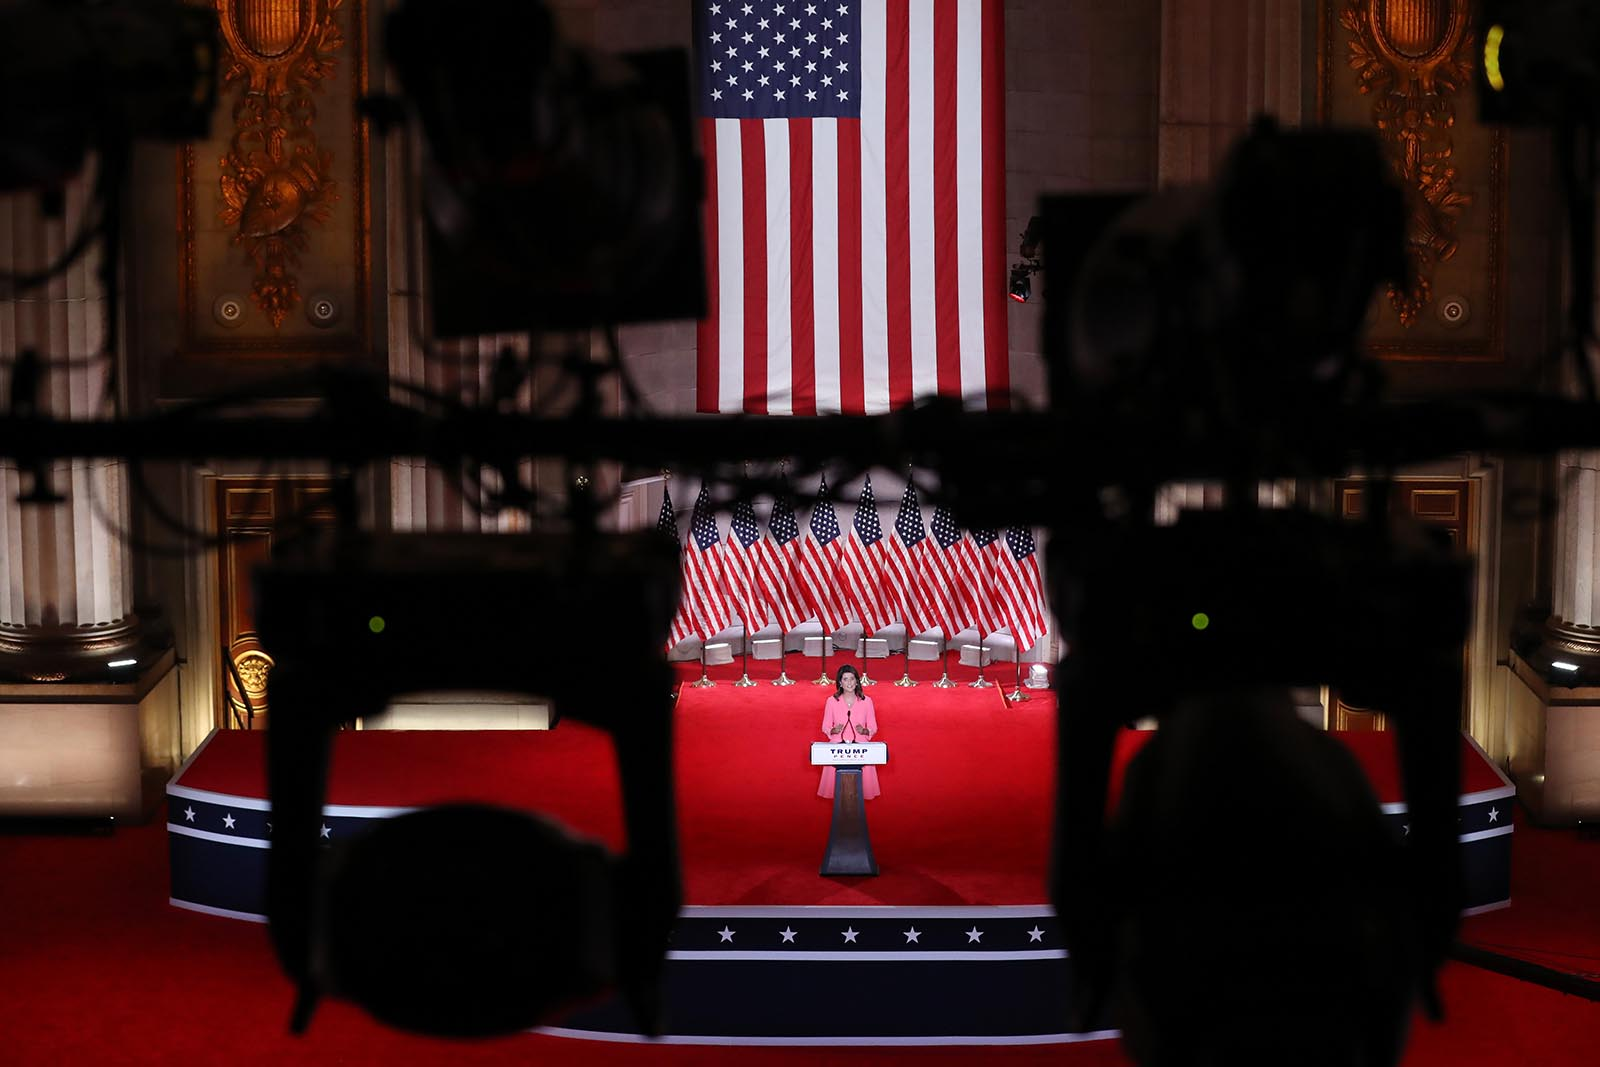 Former U.S. Ambassador to the United Nations Nikki Haley stands on stage in an empty Mellon Auditorium while addressing the Republican National Convention on Monday in Washington.